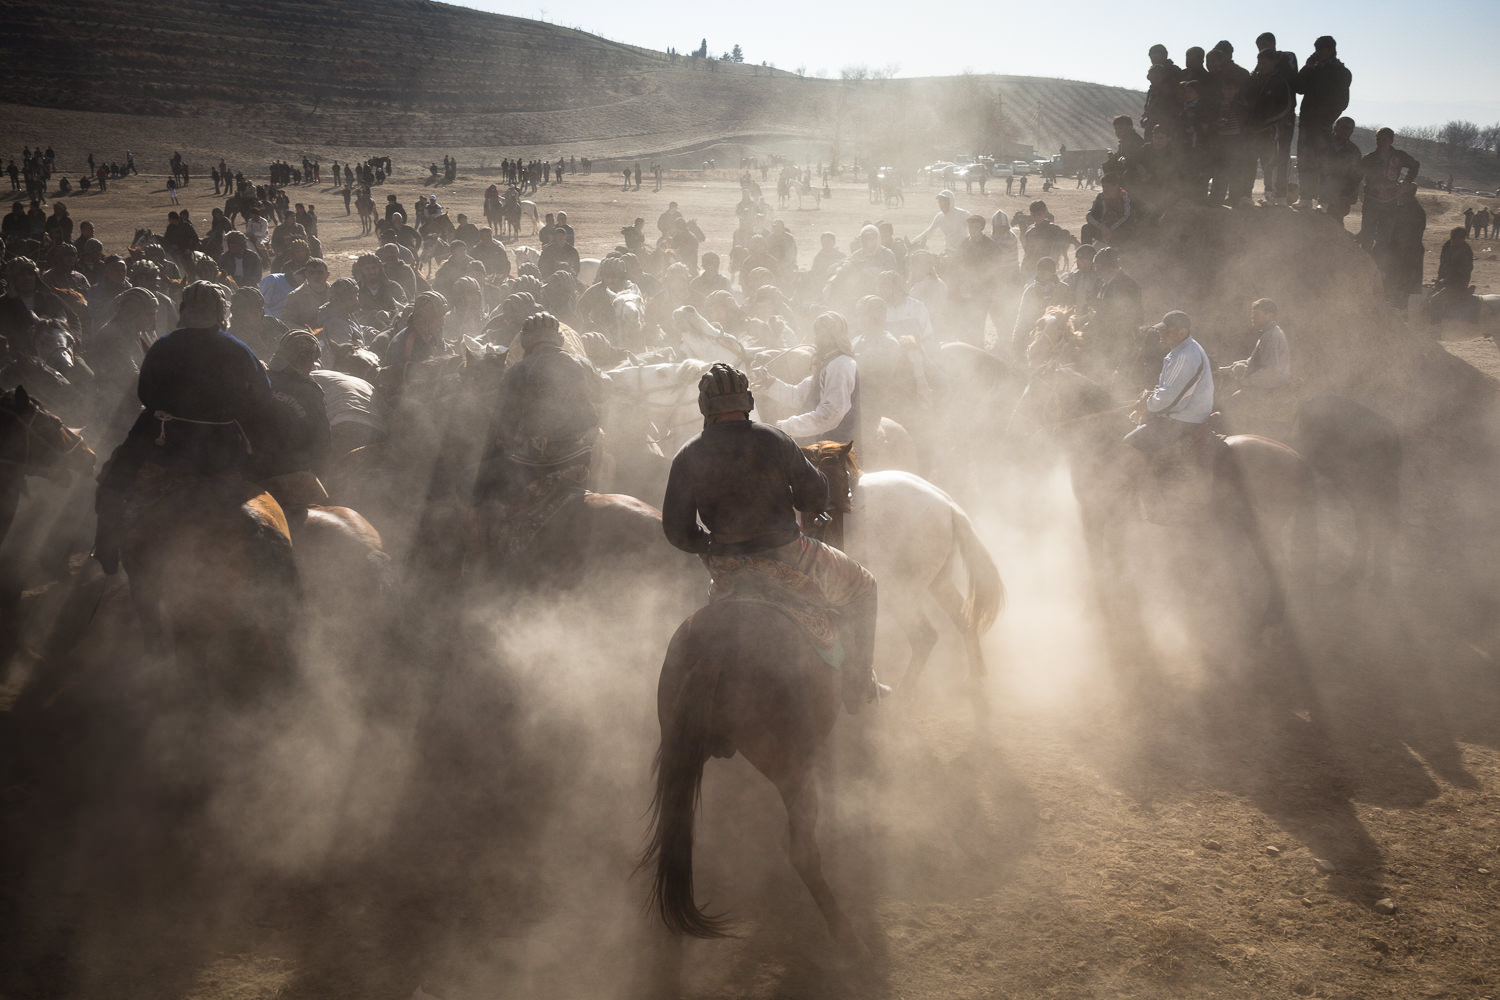 Sunlight and dust streams around Buzkashi players in Sharinav, Tajikistan. Spectators stand on a mound nearby - audience members often wander as close as possible to watch the game.